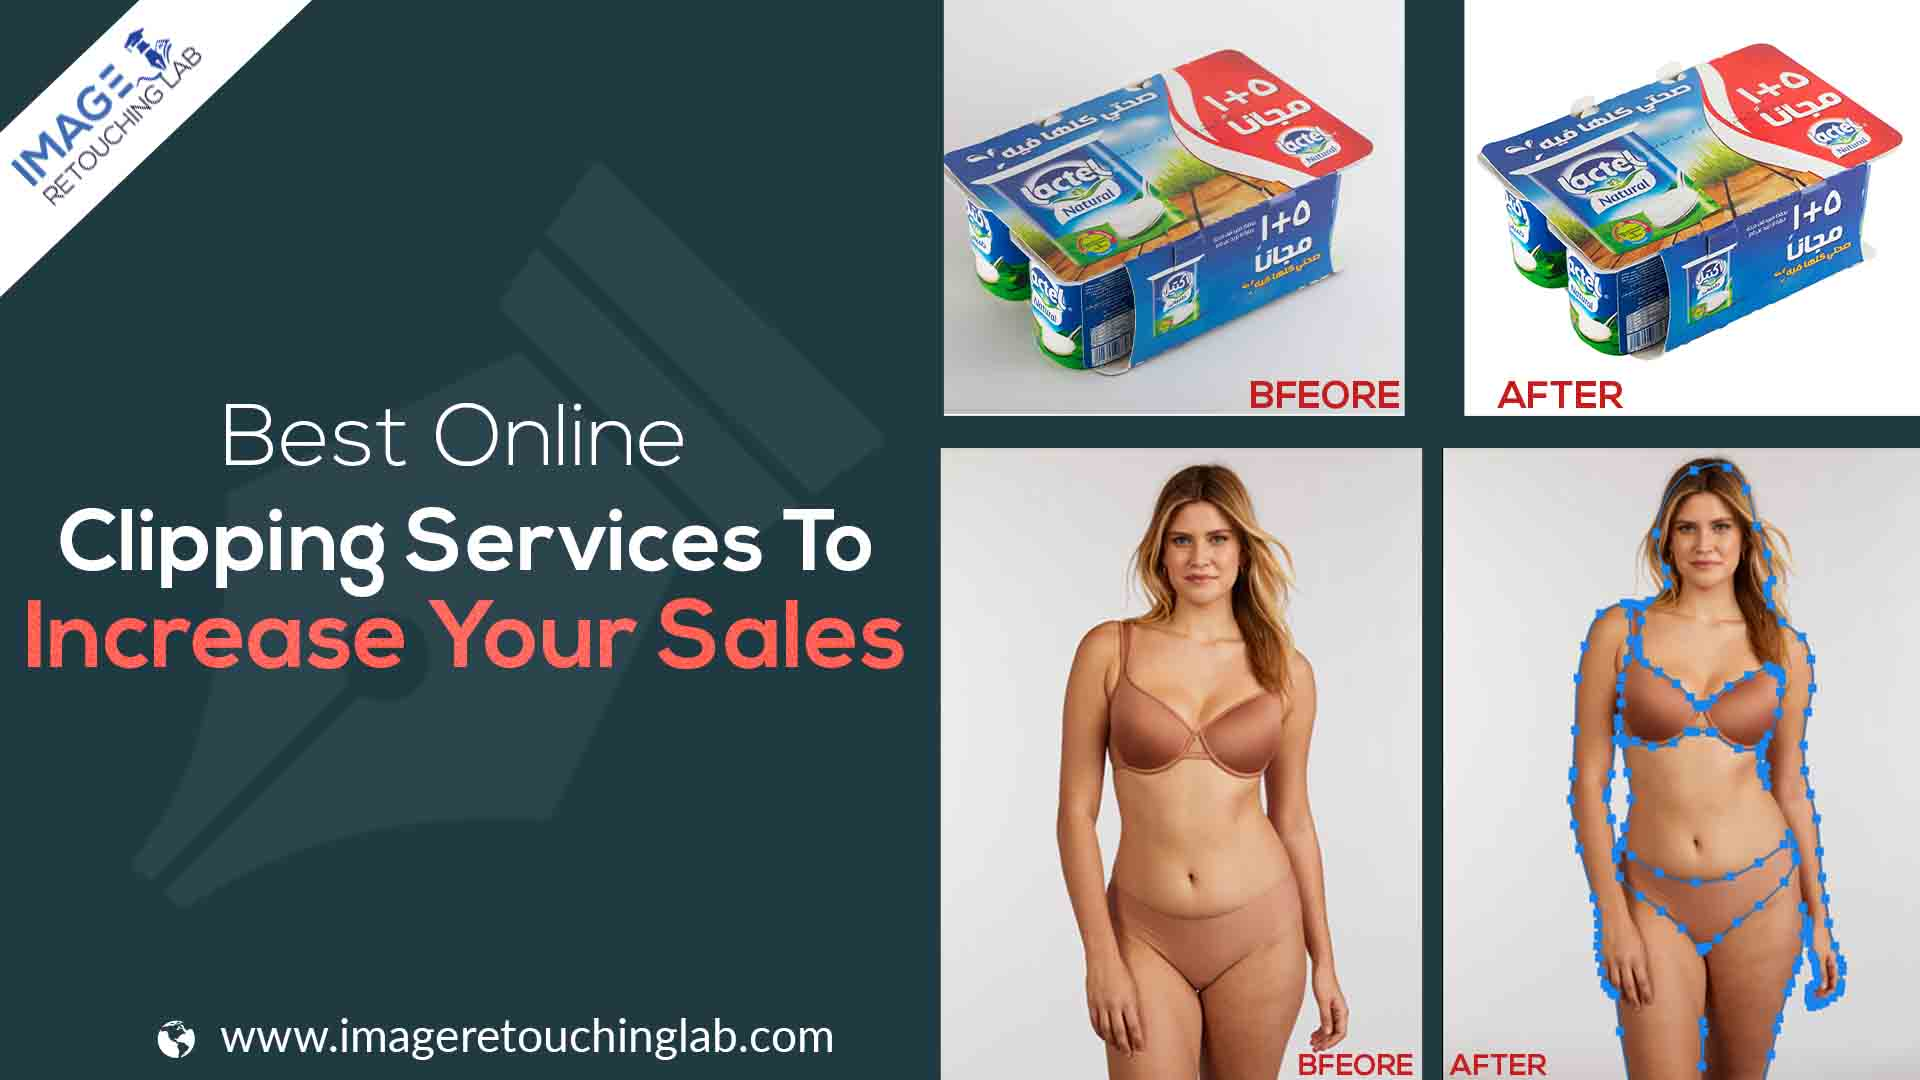 Best Online Clipping Services To Increase Your Sales